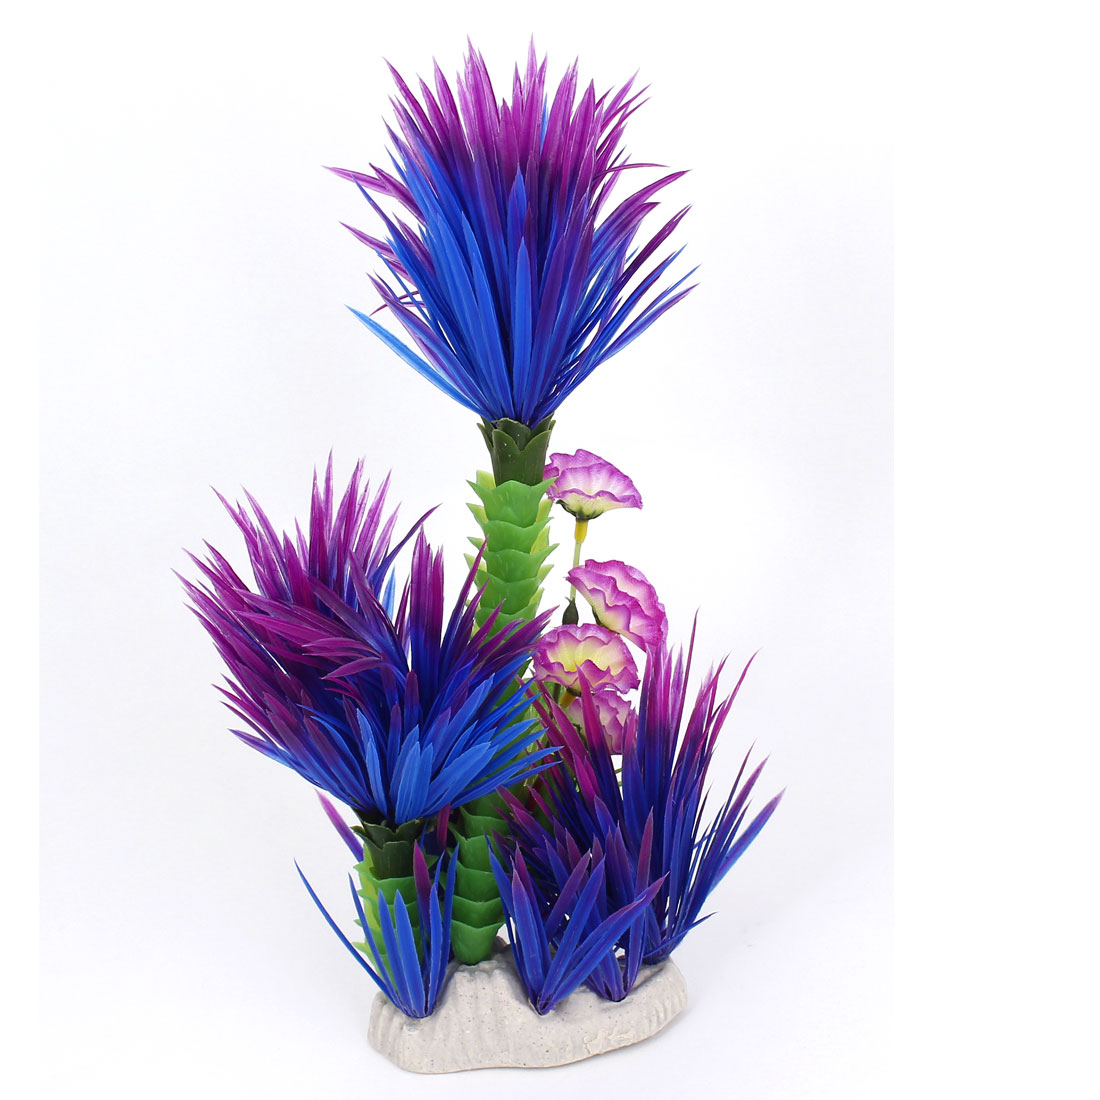 Aquarium Flower Accent Underwater Tree Plant Ornament Purple Blue 29cm Height